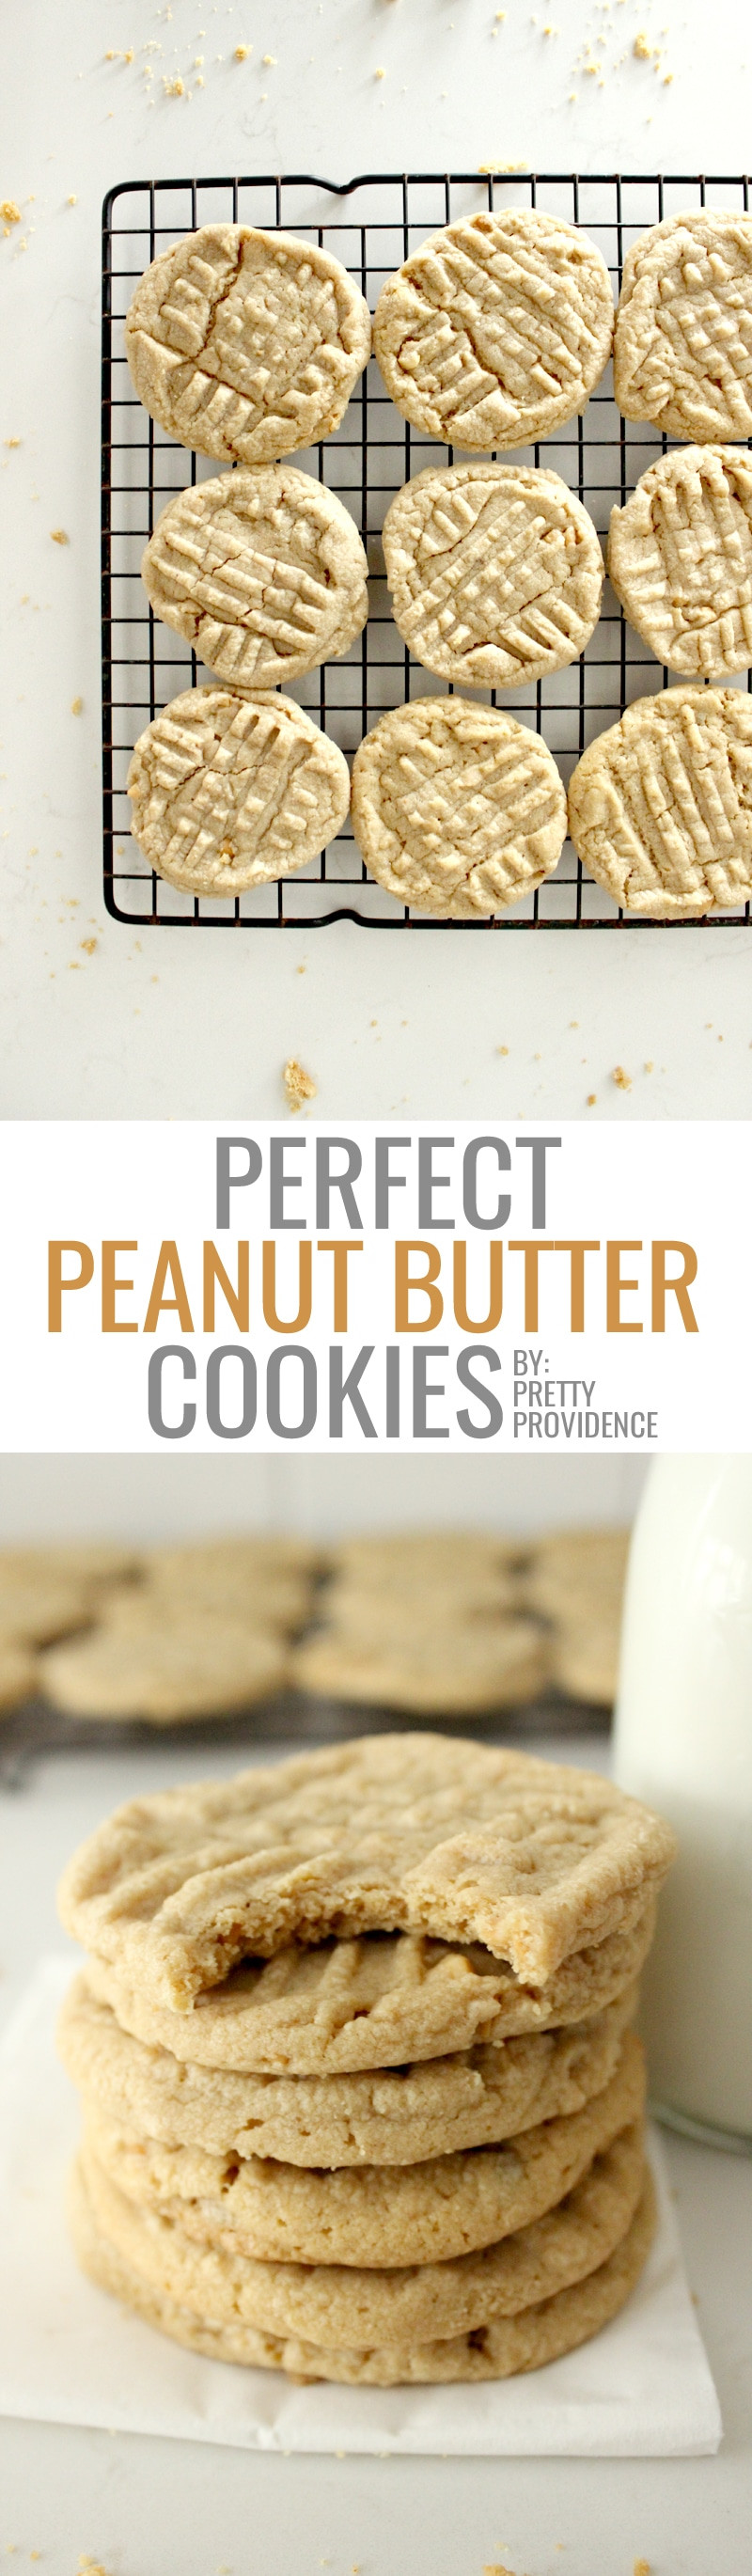 Best Peanut Butter Cookies  The BEST Peanut Butter Cookies Pretty Providence